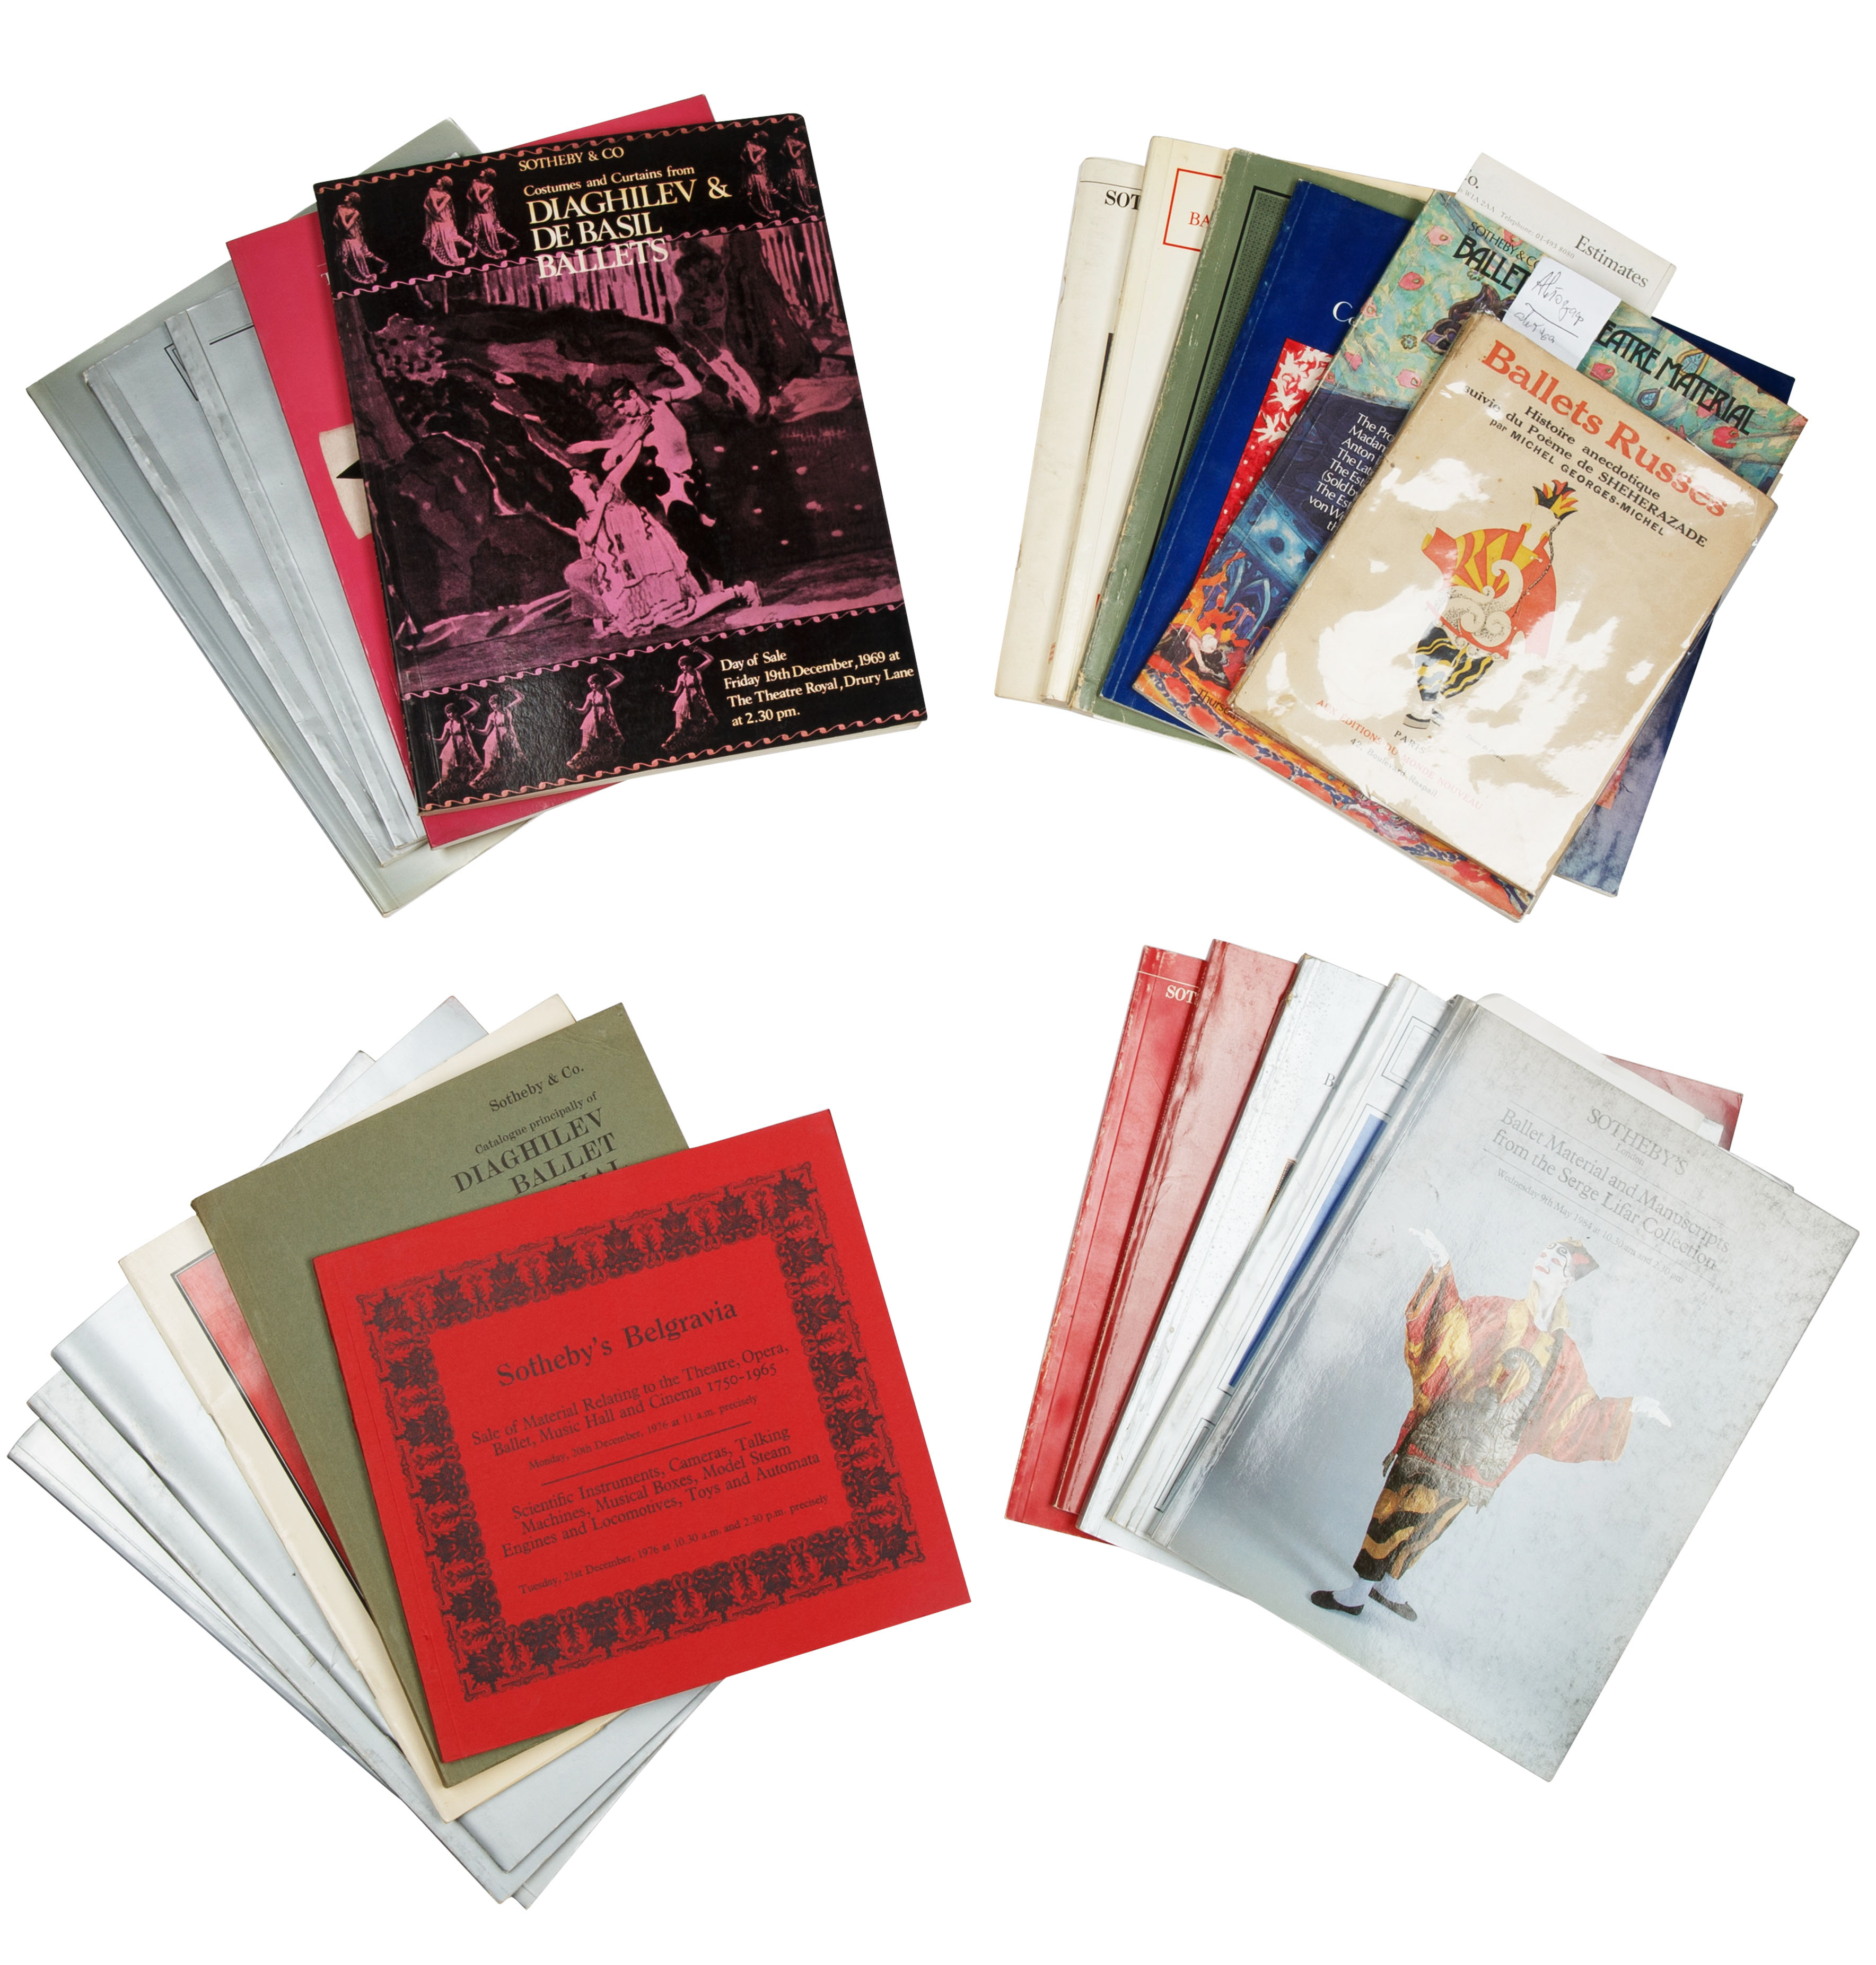 A GROUP OF 46 BALLET RUSSE AUCTION CATALOGUES AND BOOKS - Image 3 of 3